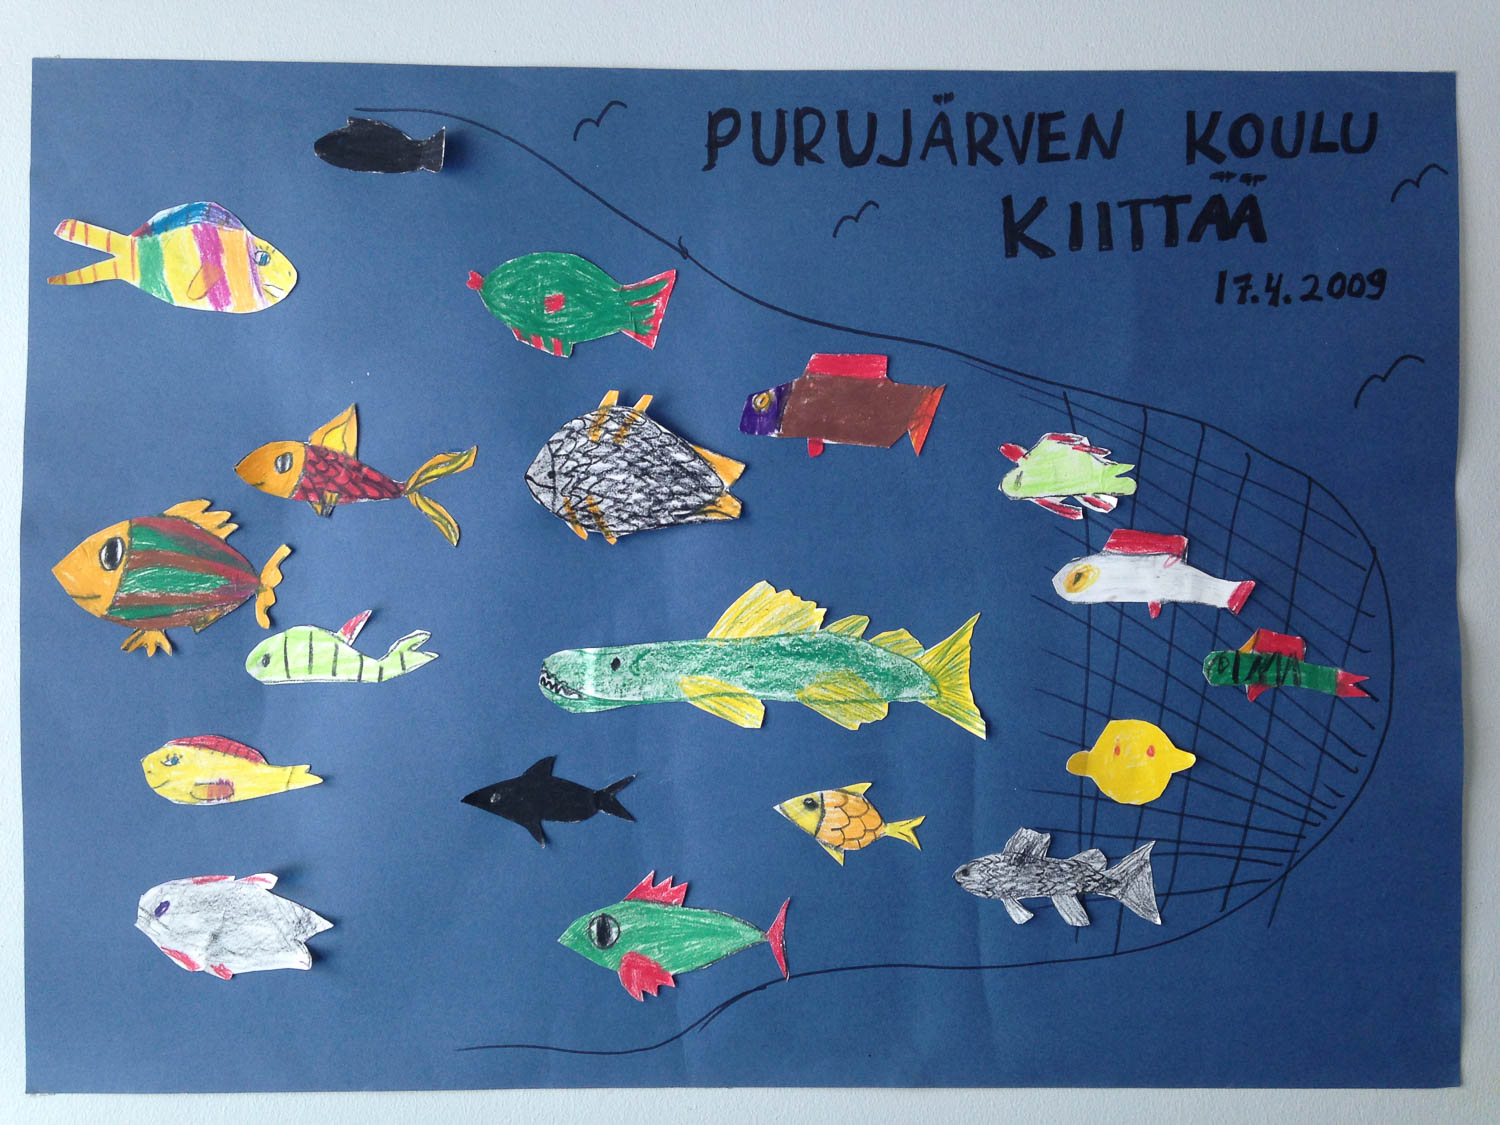 Poster at the Puruvesi fishing office